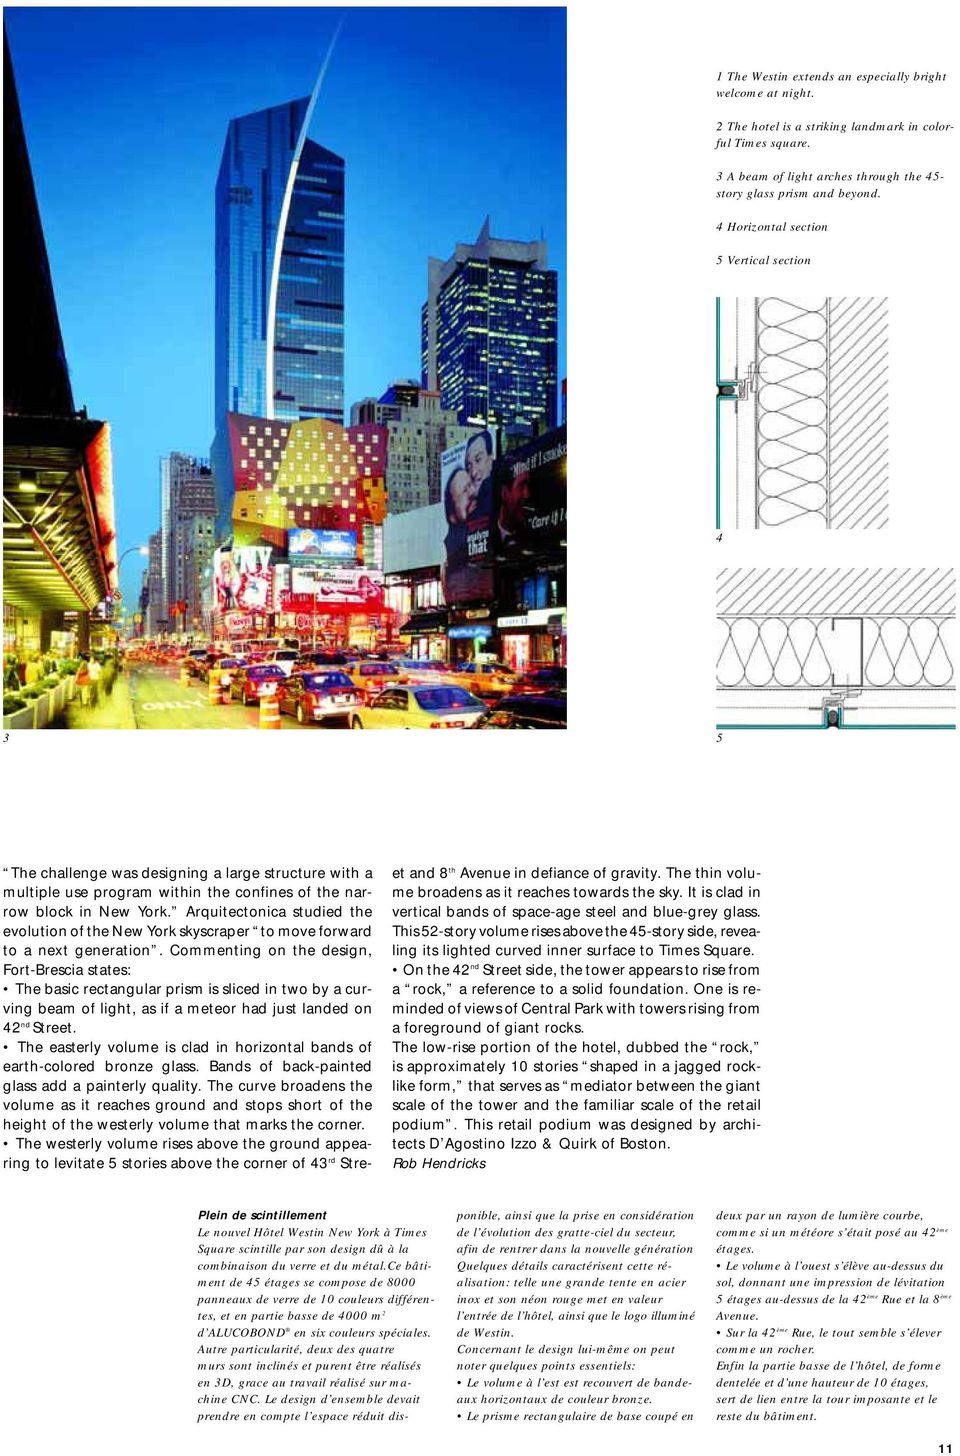 Arquitectonica studied the evolution of the New York skyscraper to move forward to a next generation.